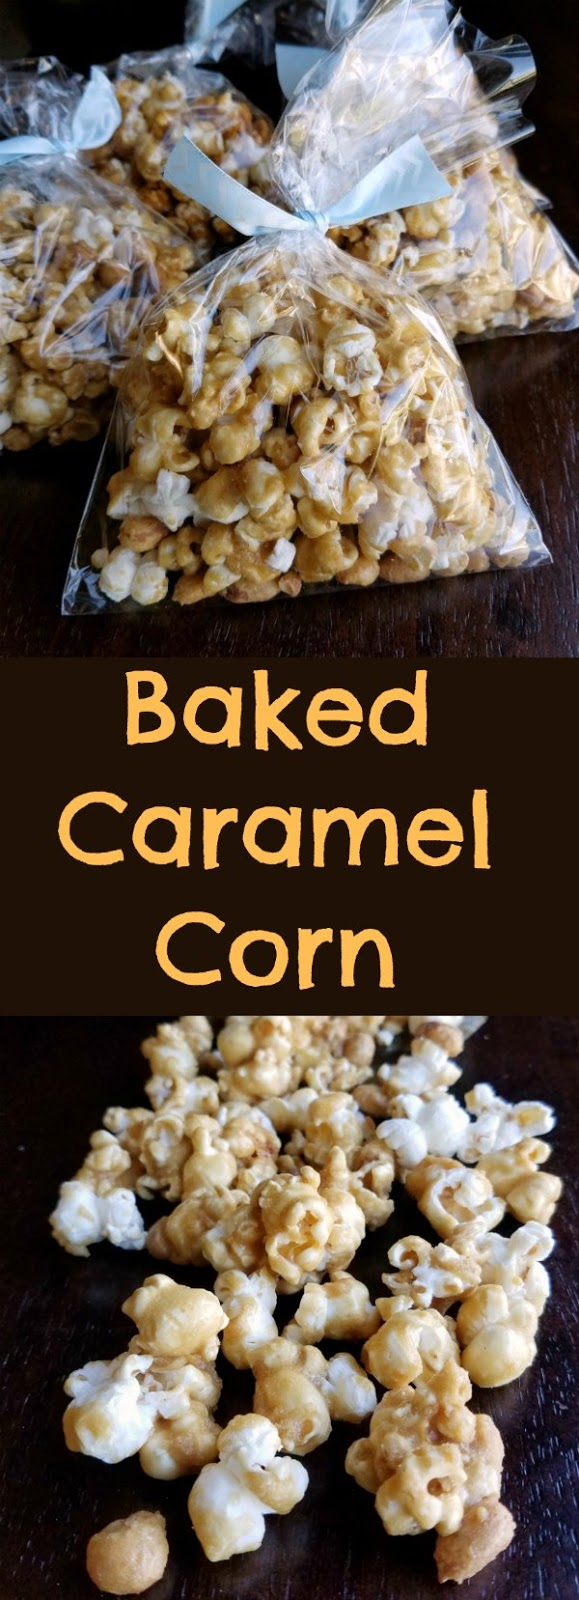 When you sweet tooth hits, but you also need something crunchy and a little salty, caramel corn is the perfect answer.  This recipe makes nice crisp but buttery and sweet caramel corn.  It comes together quickly and then bakes to the perfect finish.  It is a must make for movie night, parties and game day!